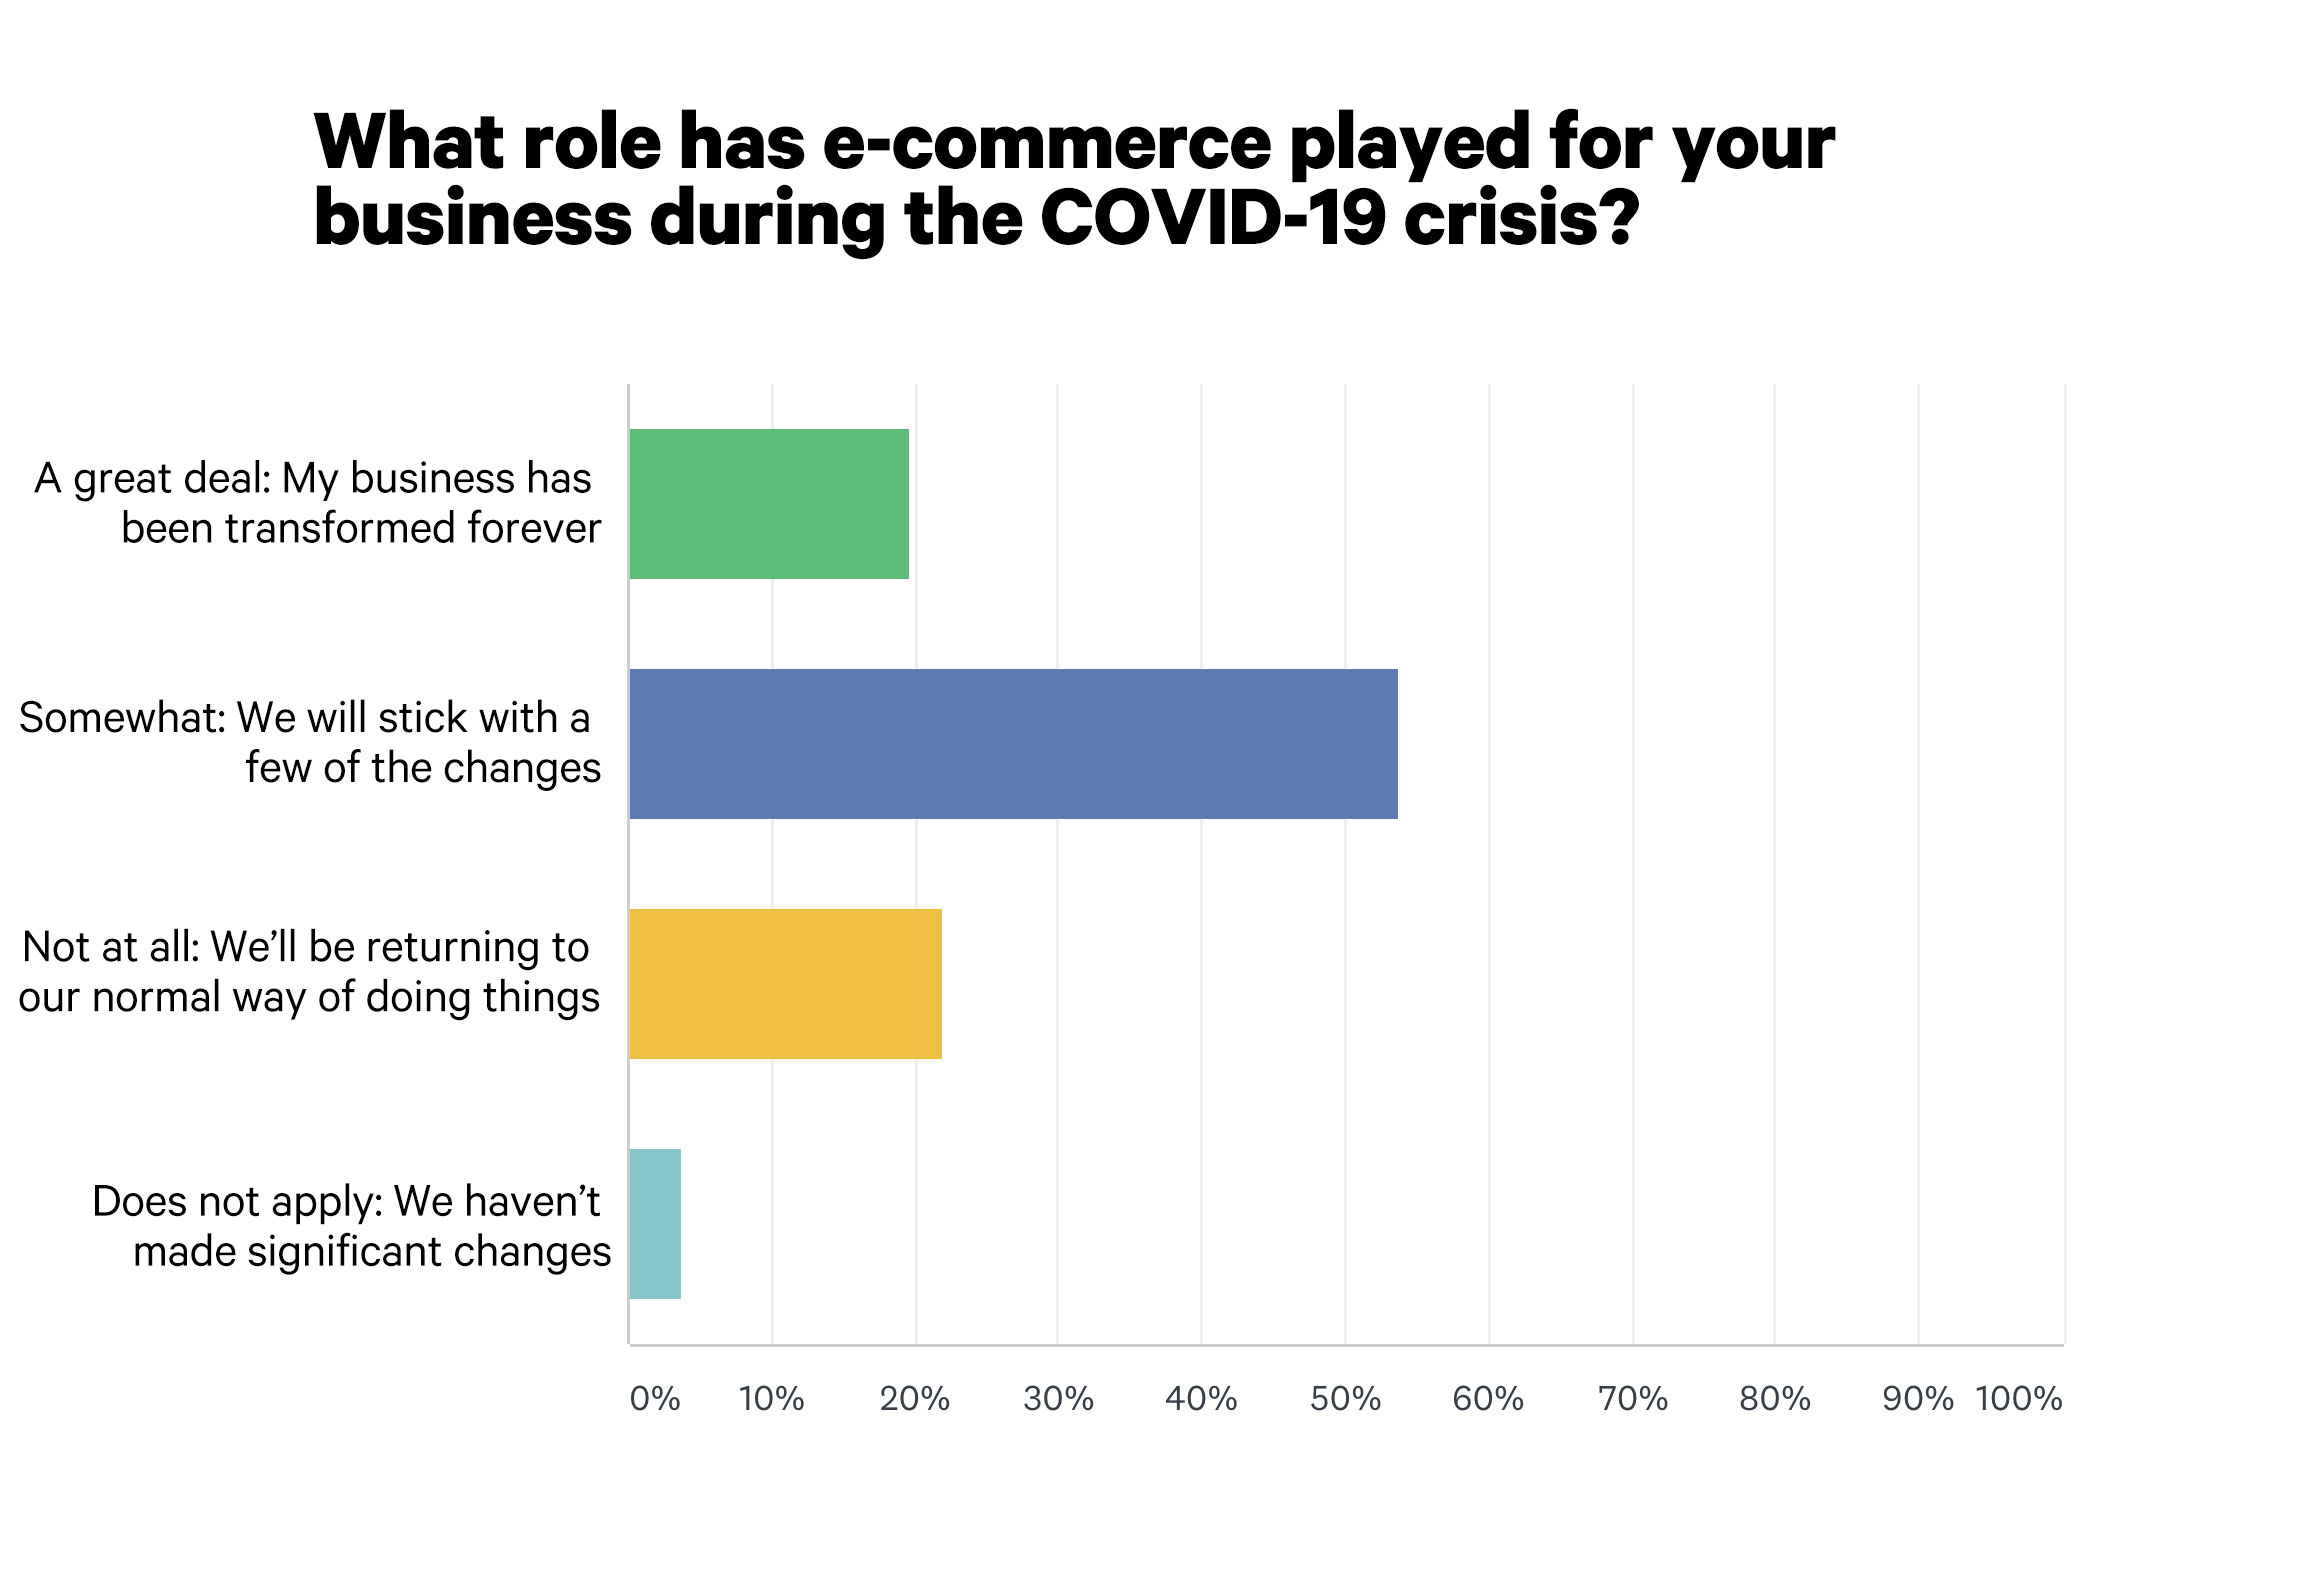 Graph on roles e-commerce played in COVID-19 crisis